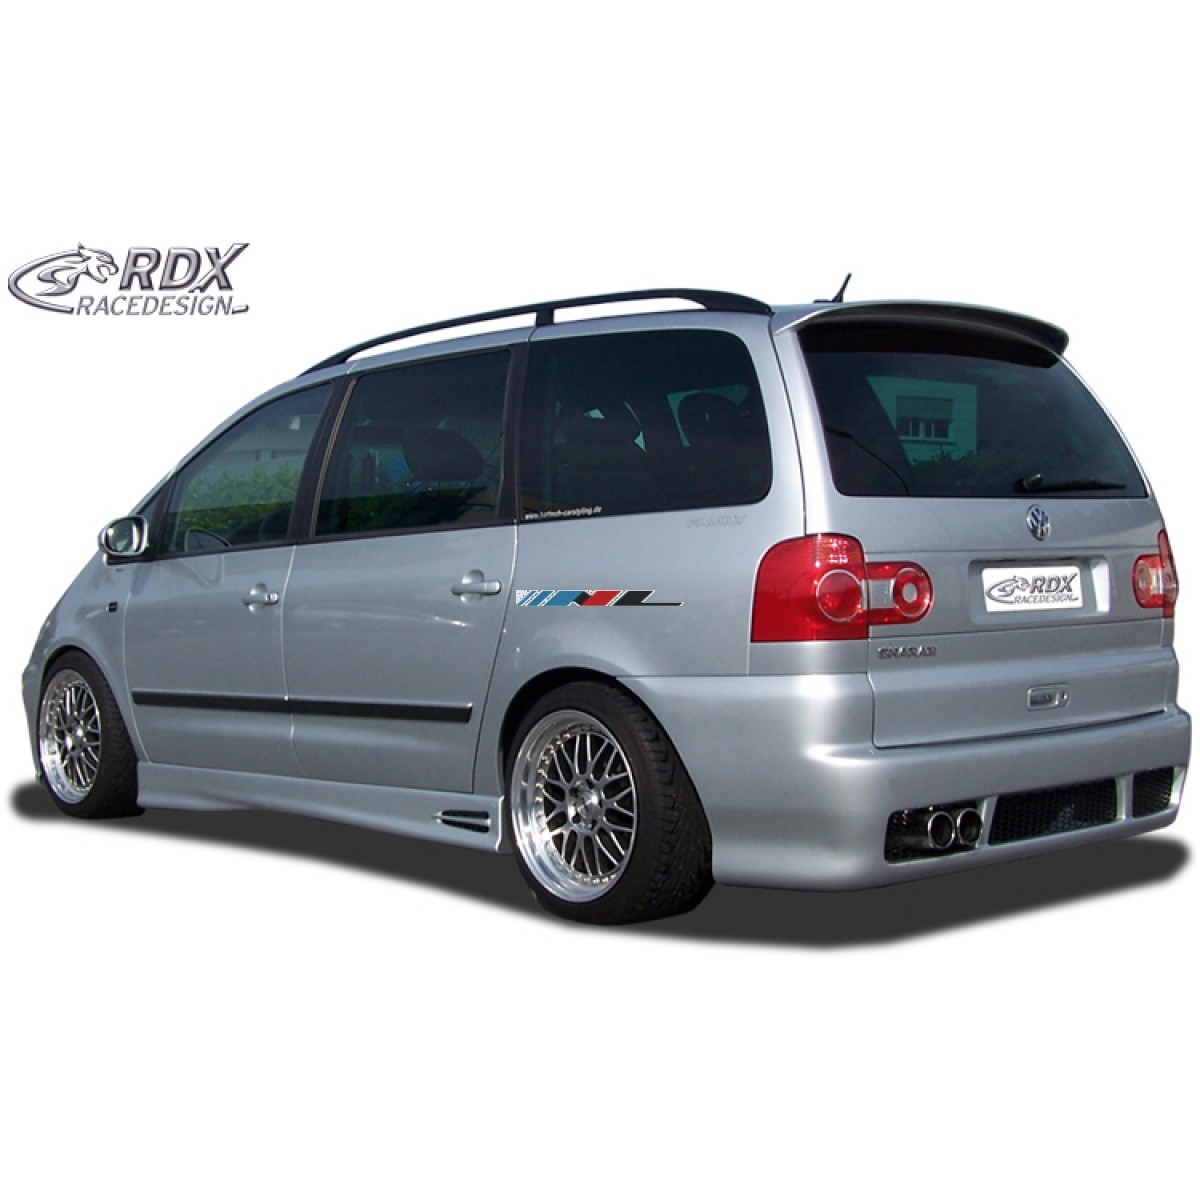 1996 volkswagen sharan 7m pictures information and specs auto. Black Bedroom Furniture Sets. Home Design Ideas